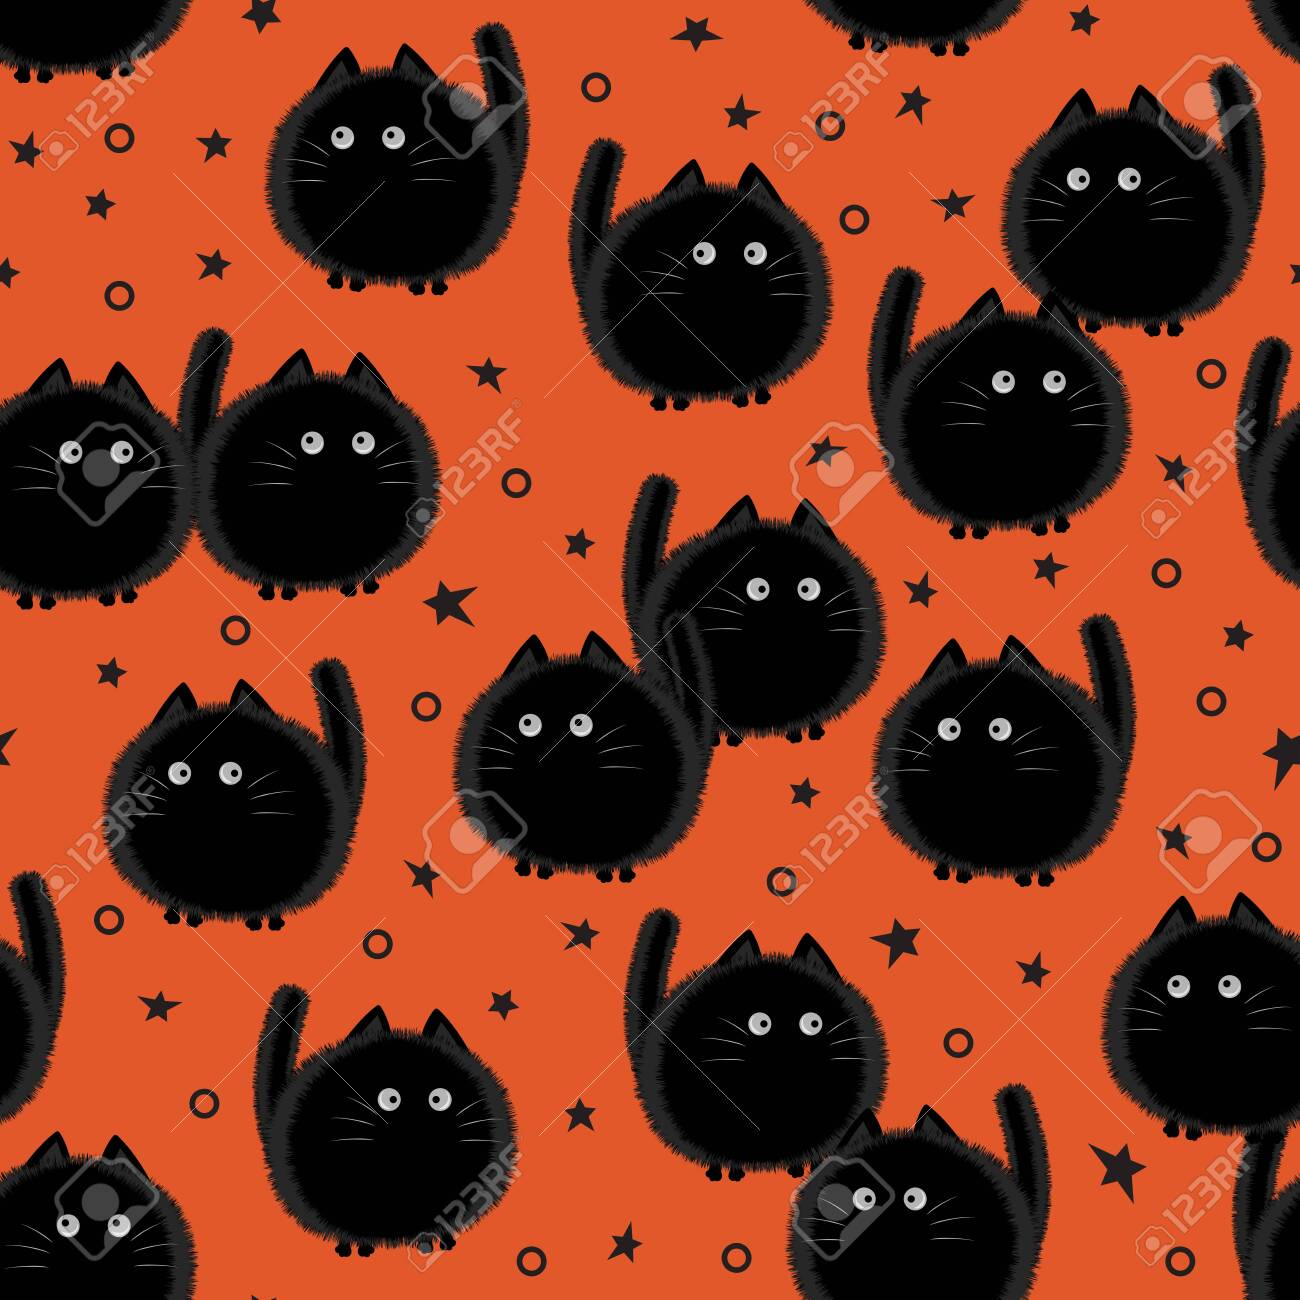 Halloween spooky cats seamless pattern on orange background